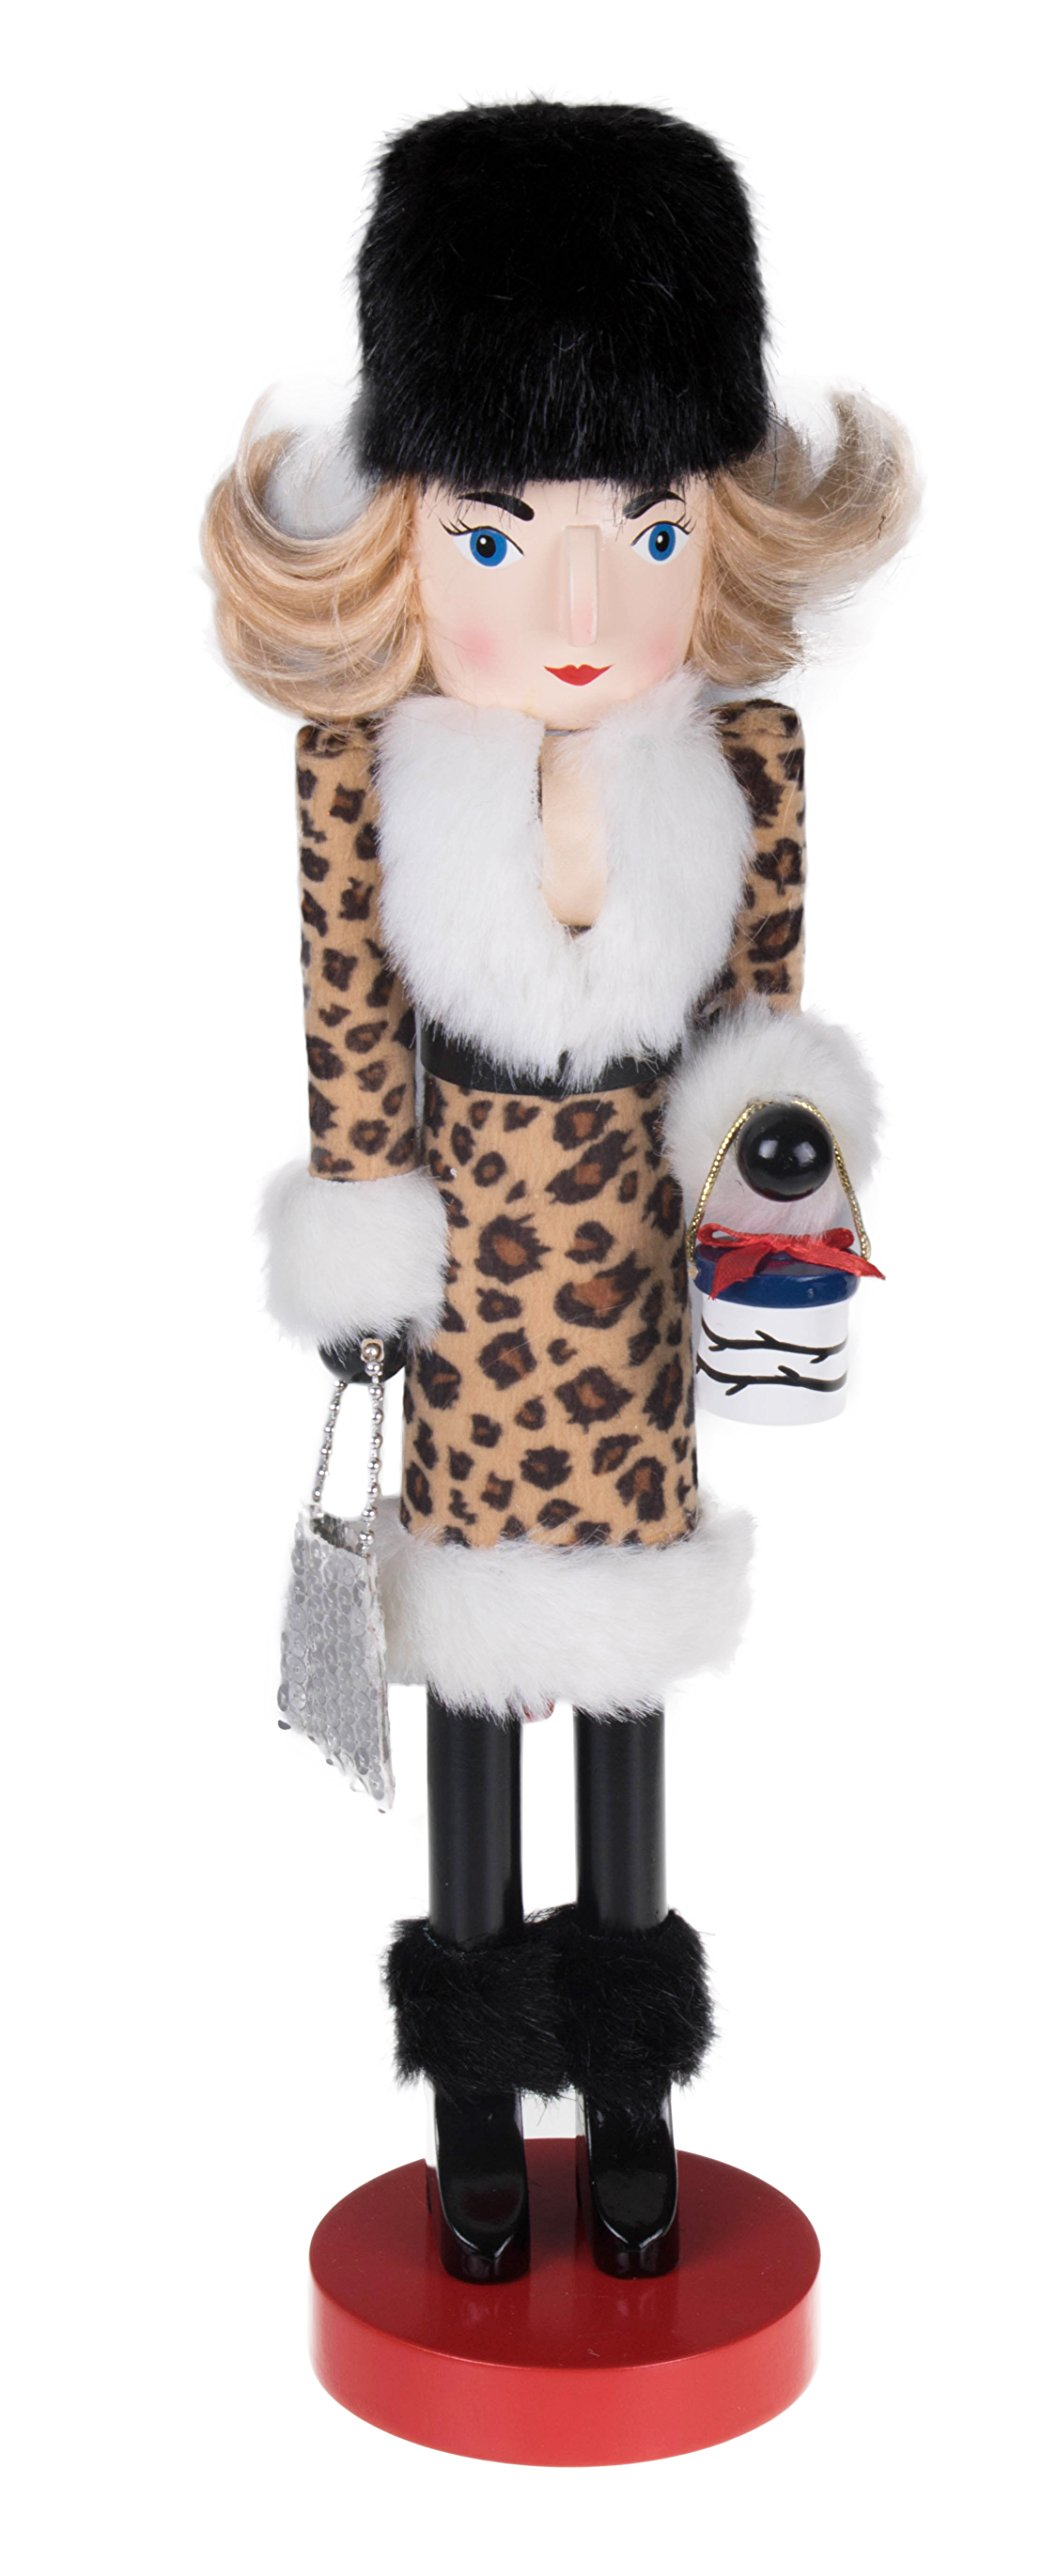 Woman Shopping Nutcracker by Clever Creations   Leopard Print Dress with Fur Trim   Carrying Gift and Purse   Festive Christmas Decor   100% Wood   Collectable Perfect for Shelves & Tables   15'' Tall